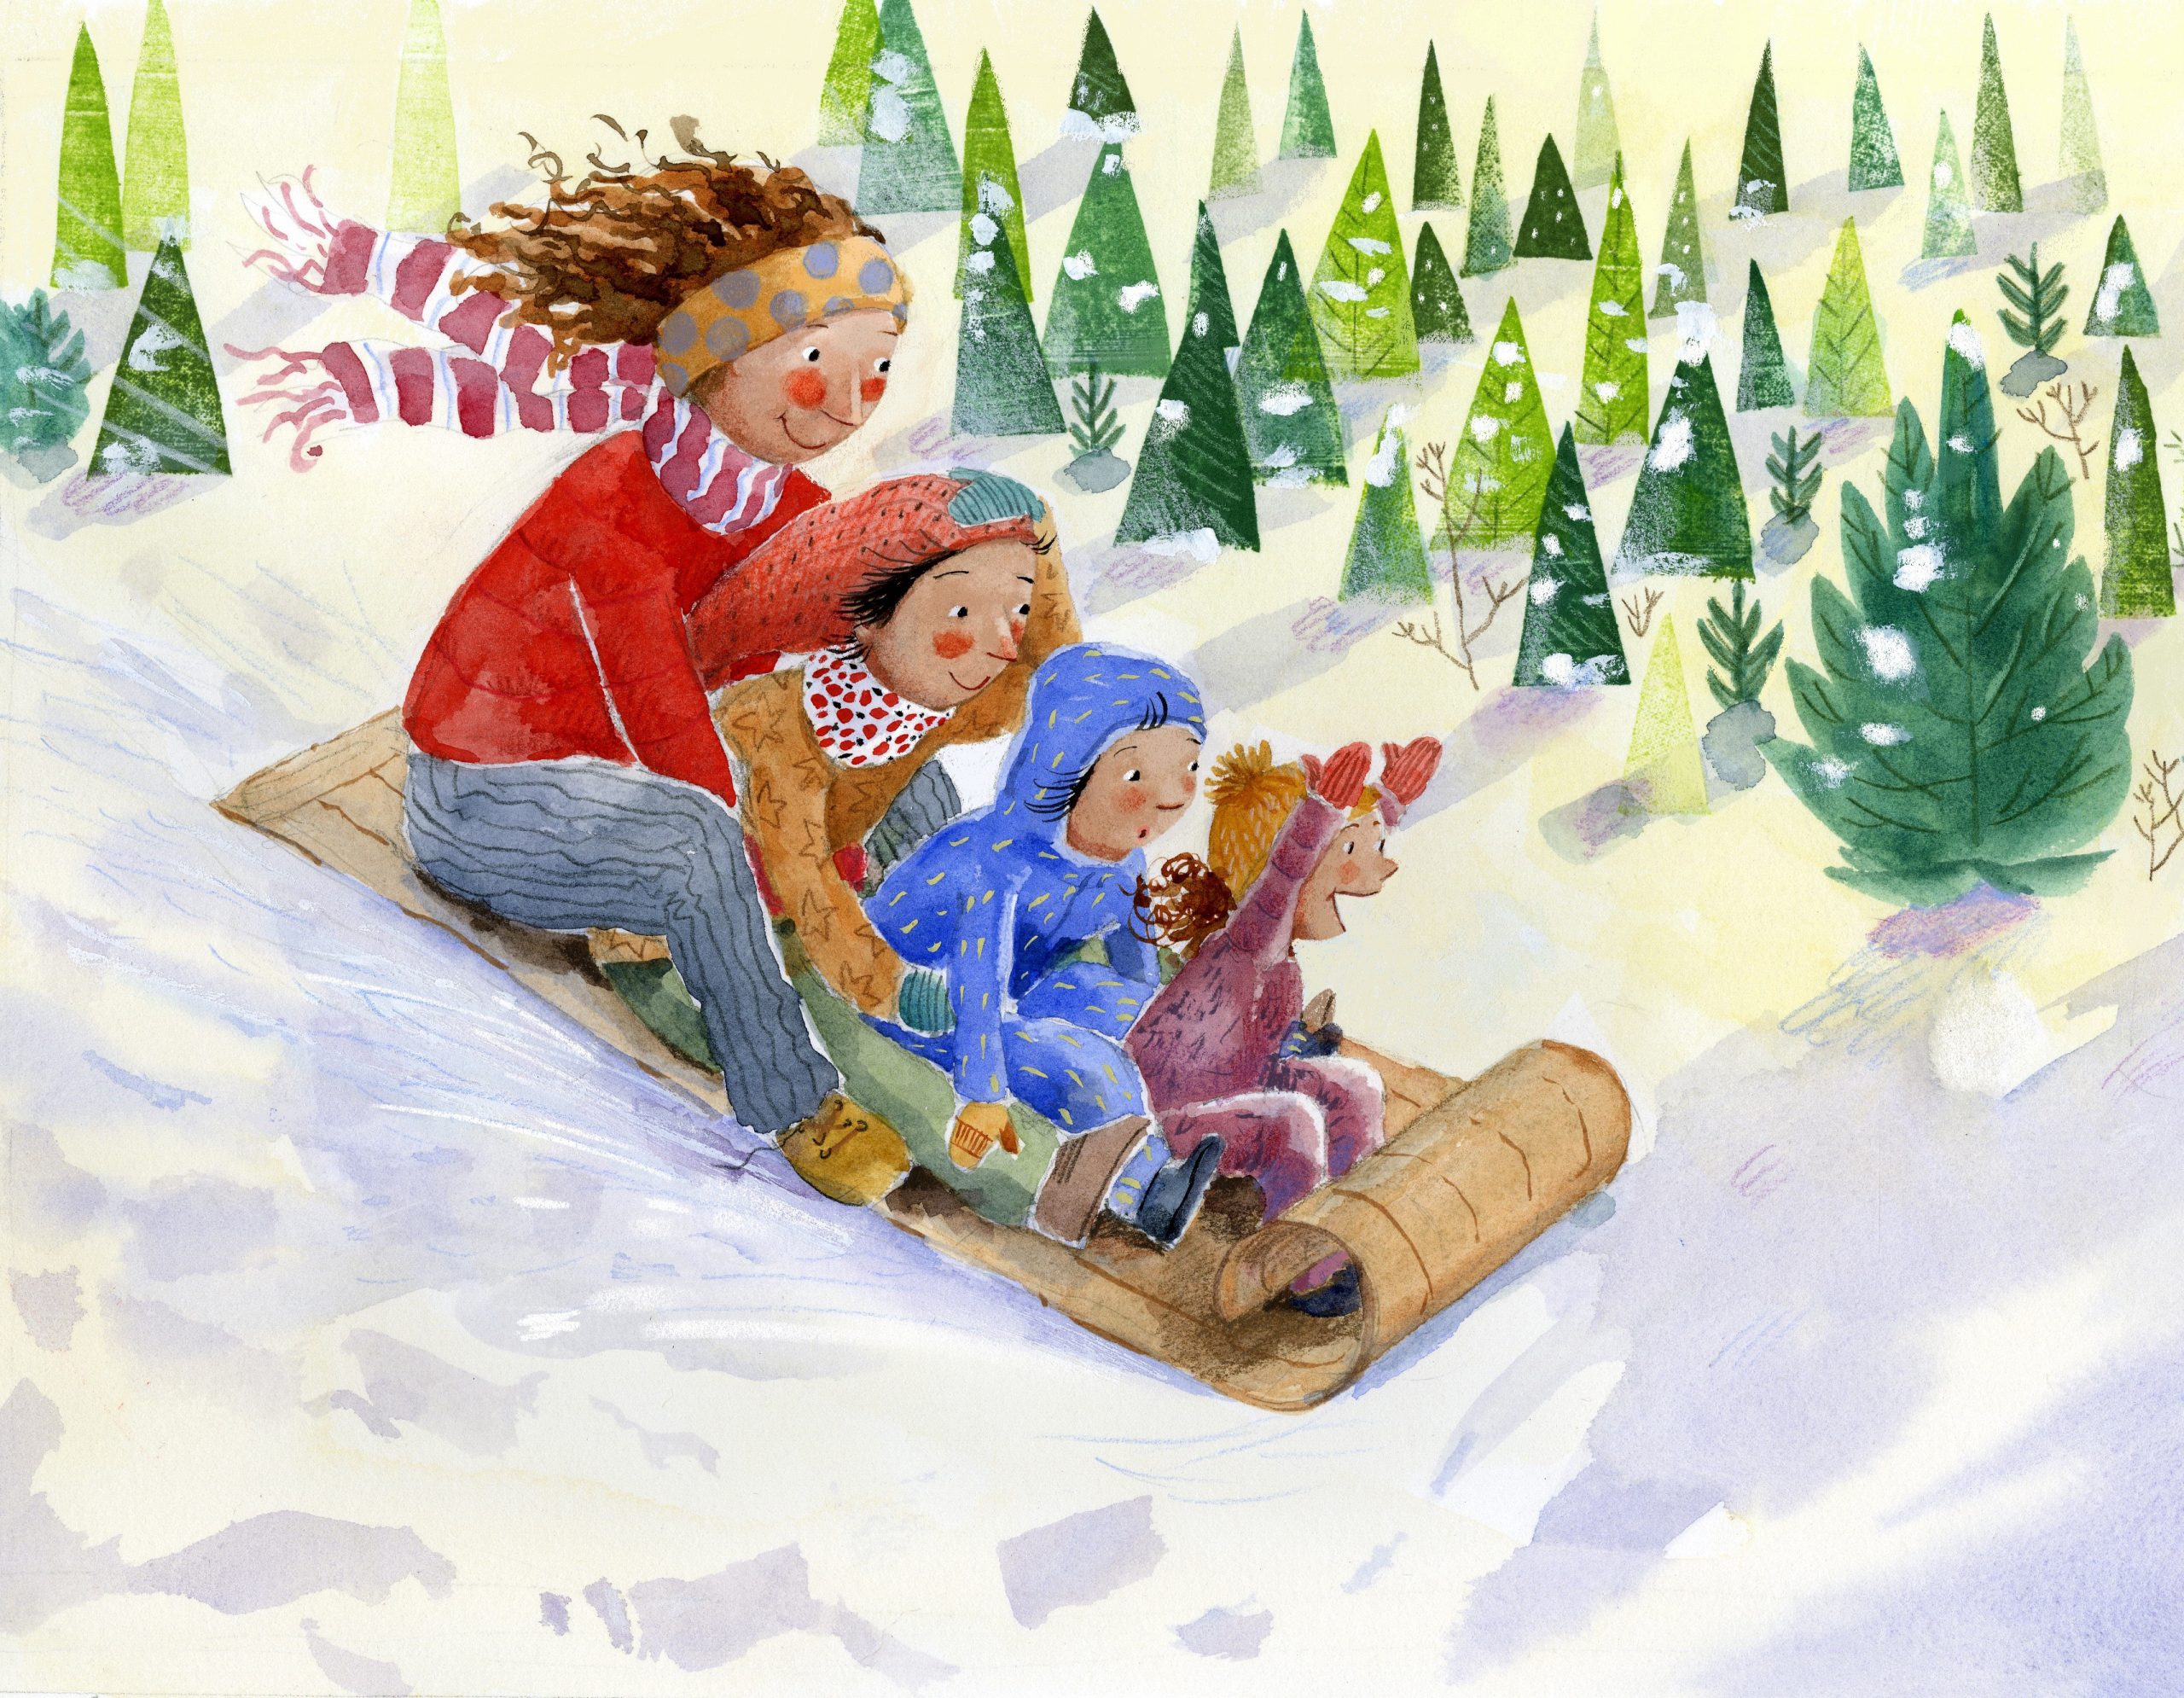 Illustration of mom and kids going downhill on a toboggan